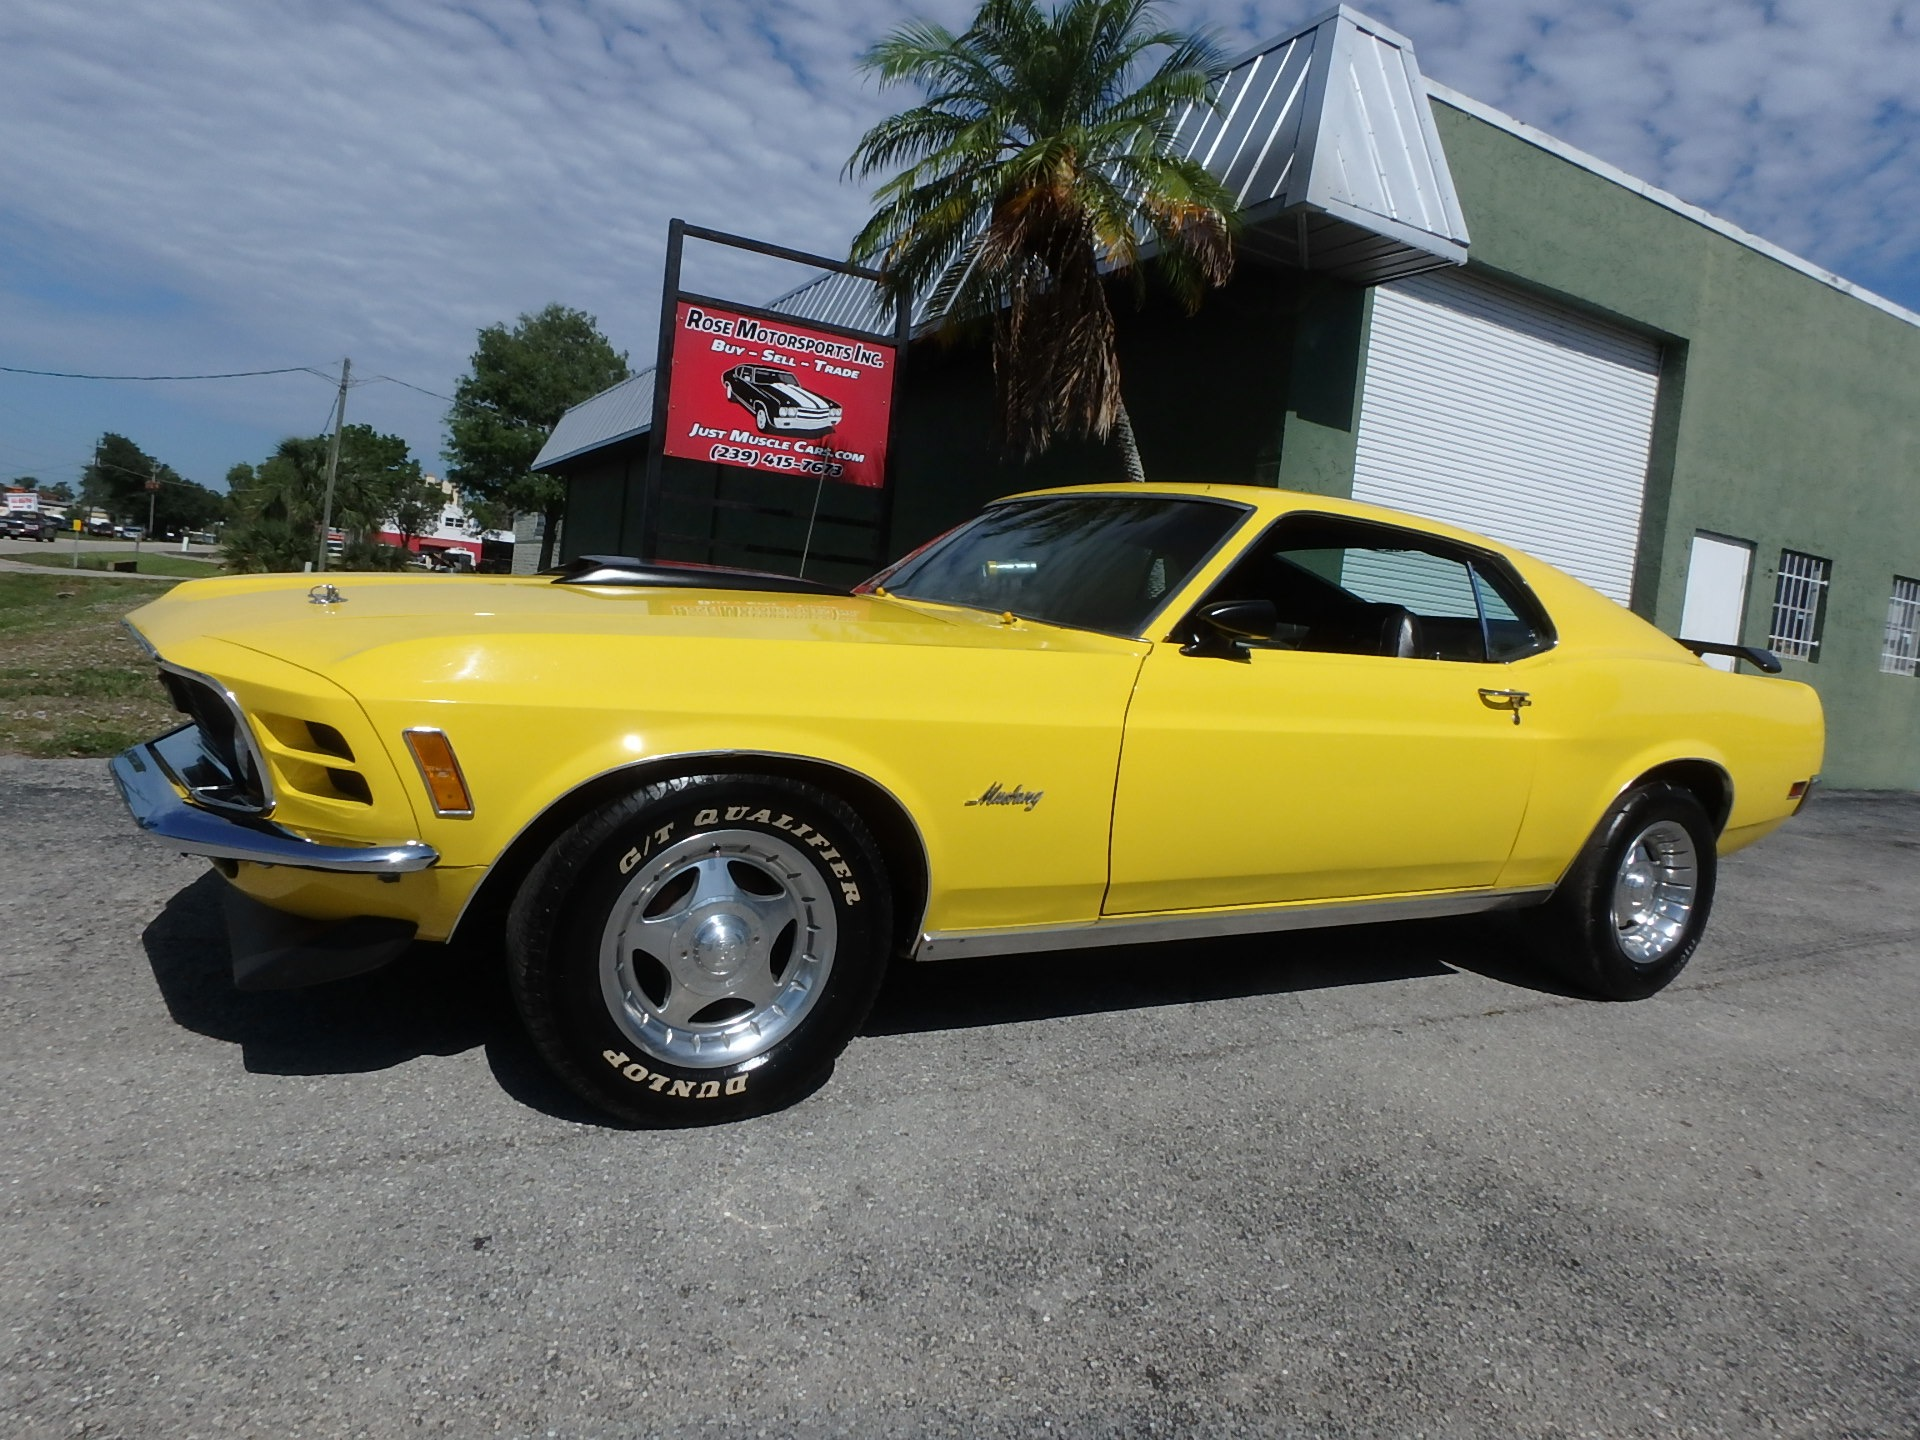 Used 1970 Ford Mustang Fastback For Sale ($26,900) | Rose